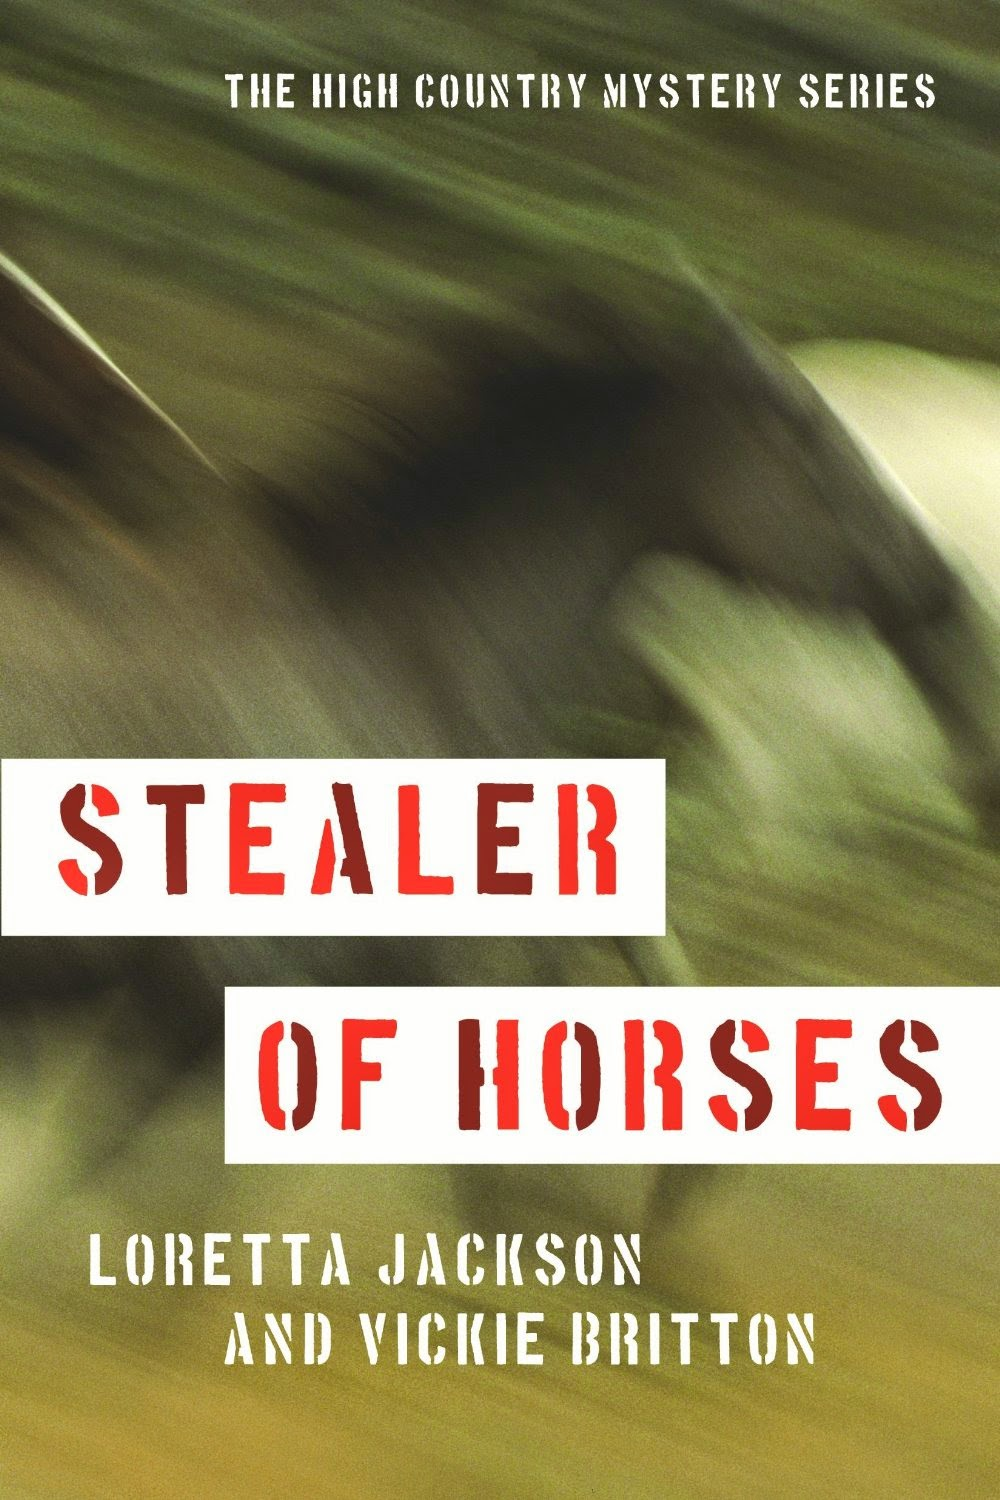 MAY PUBLISHER'S SPECIAL!  STEALER OF HORSE only $1.99!